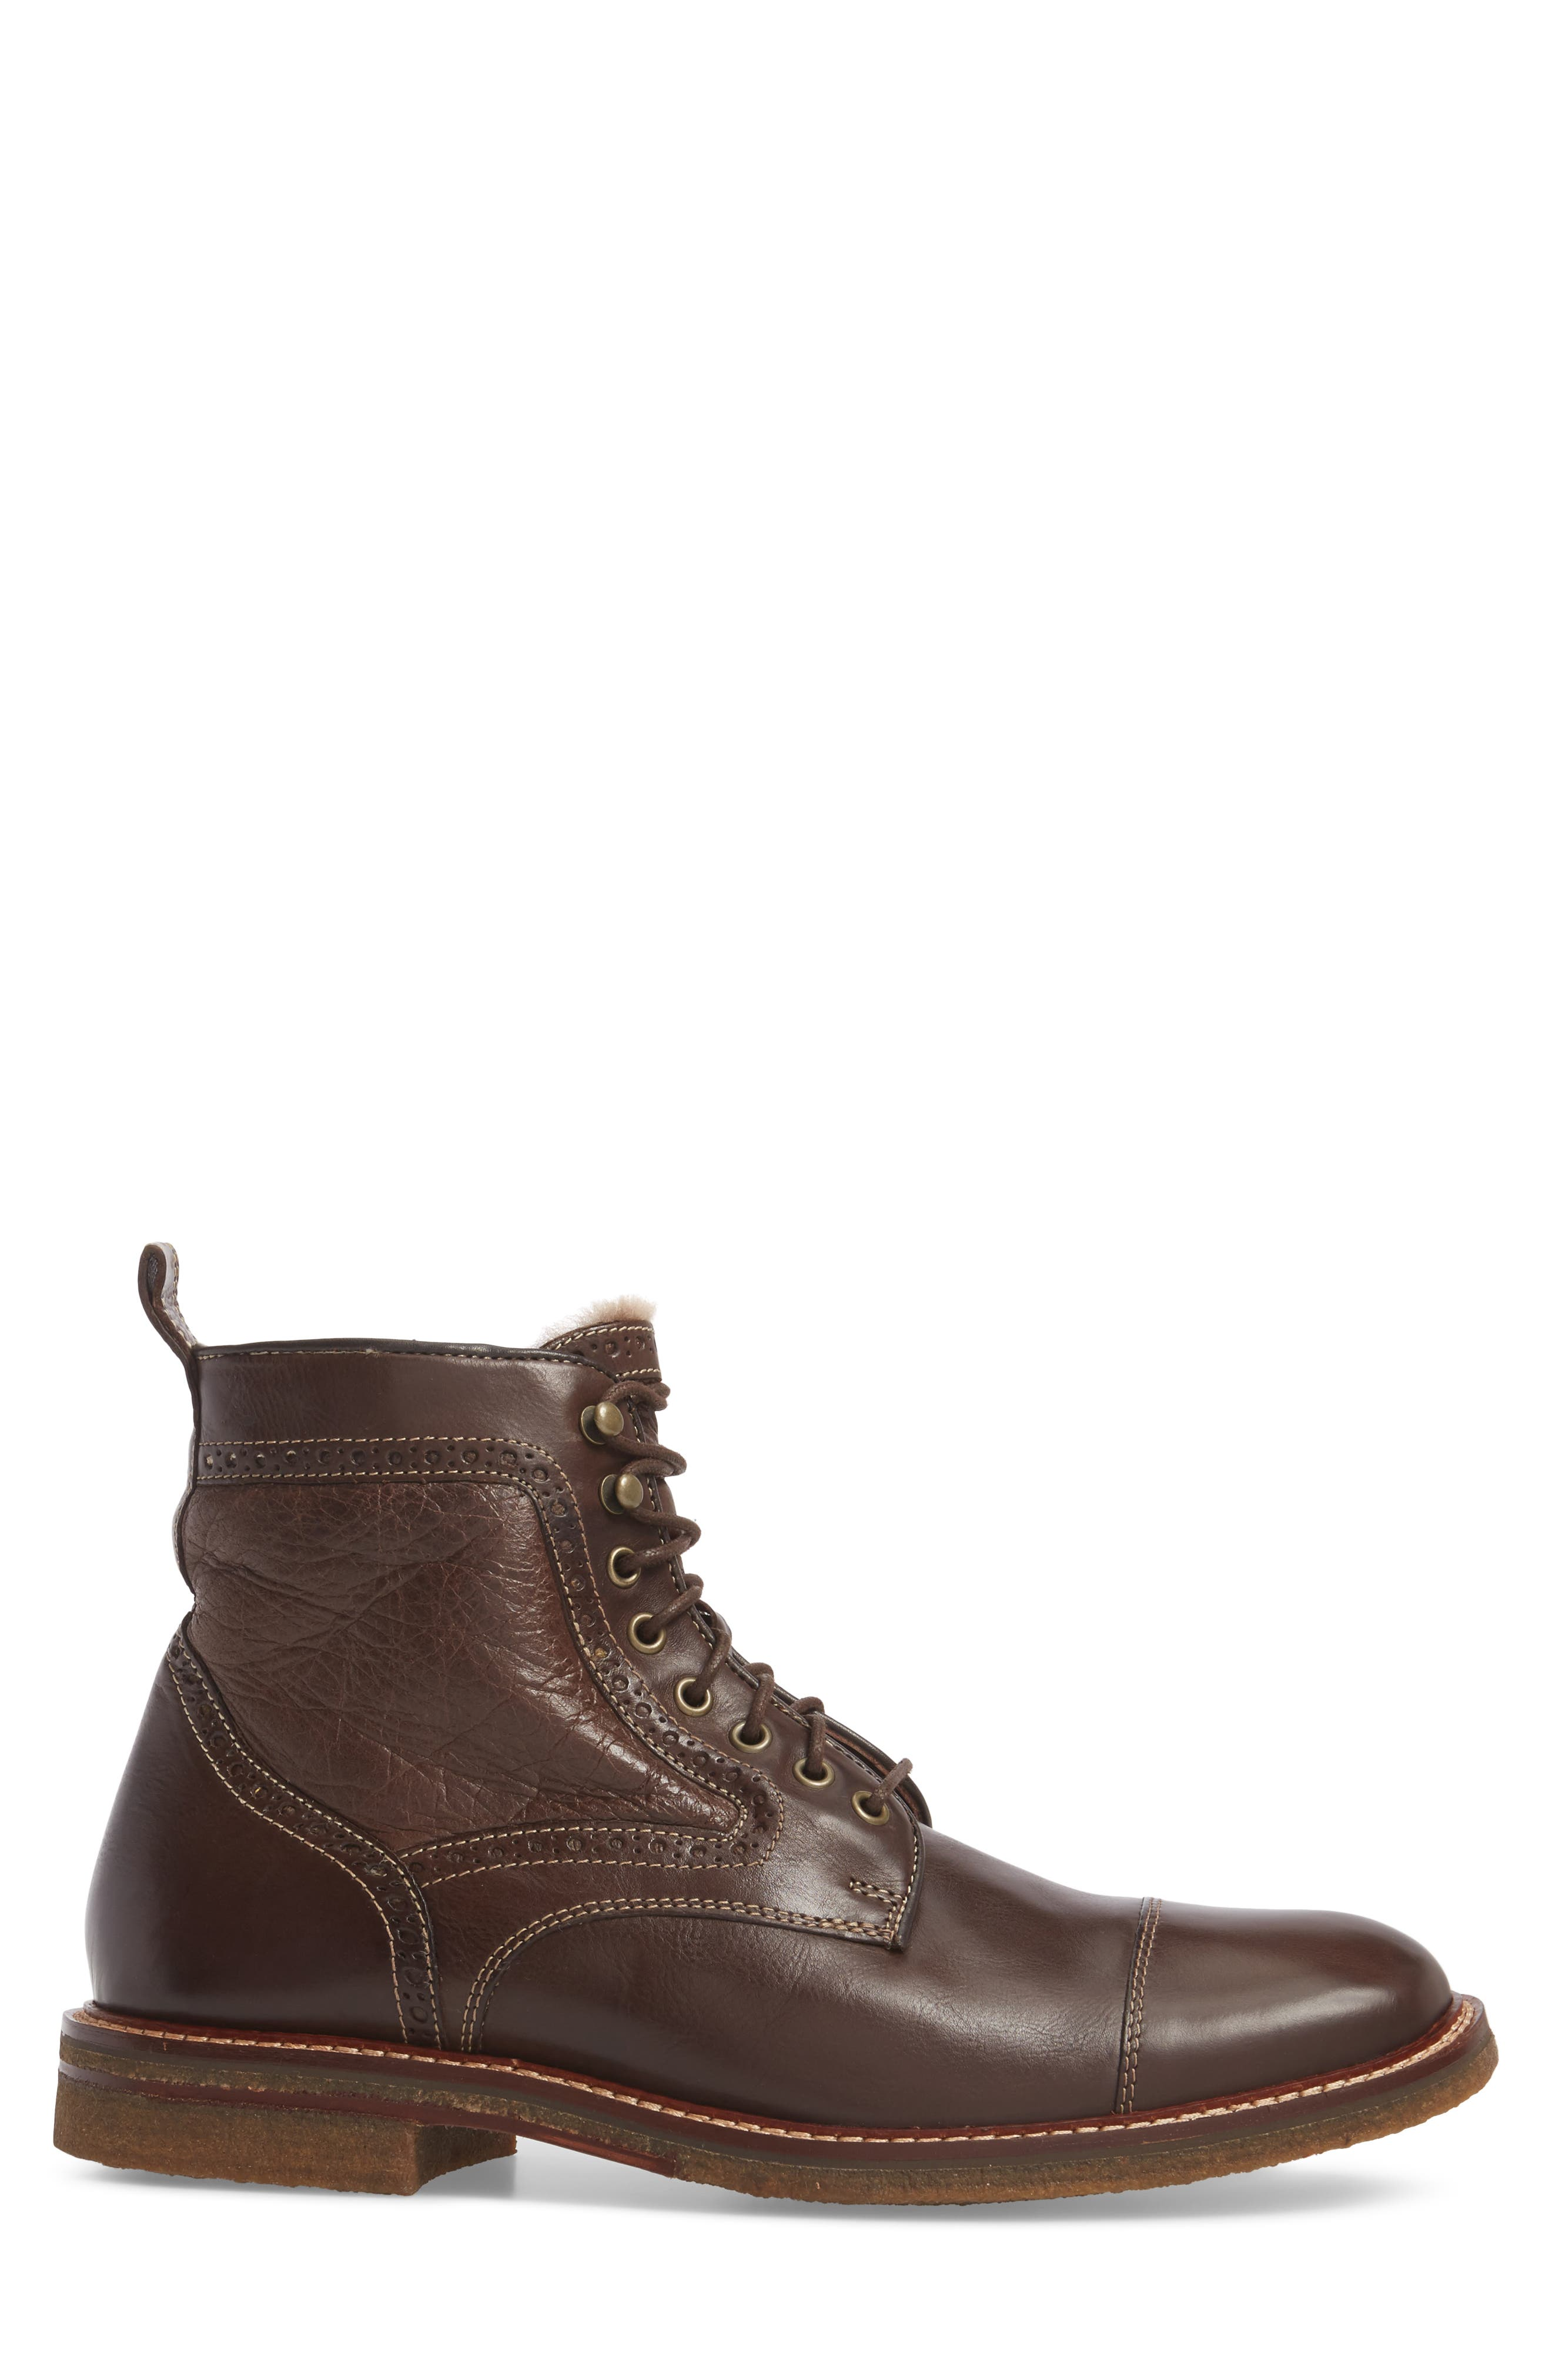 Forrester Genuine Shearling Lined Cap Toe Boot,                             Alternate thumbnail 3, color,